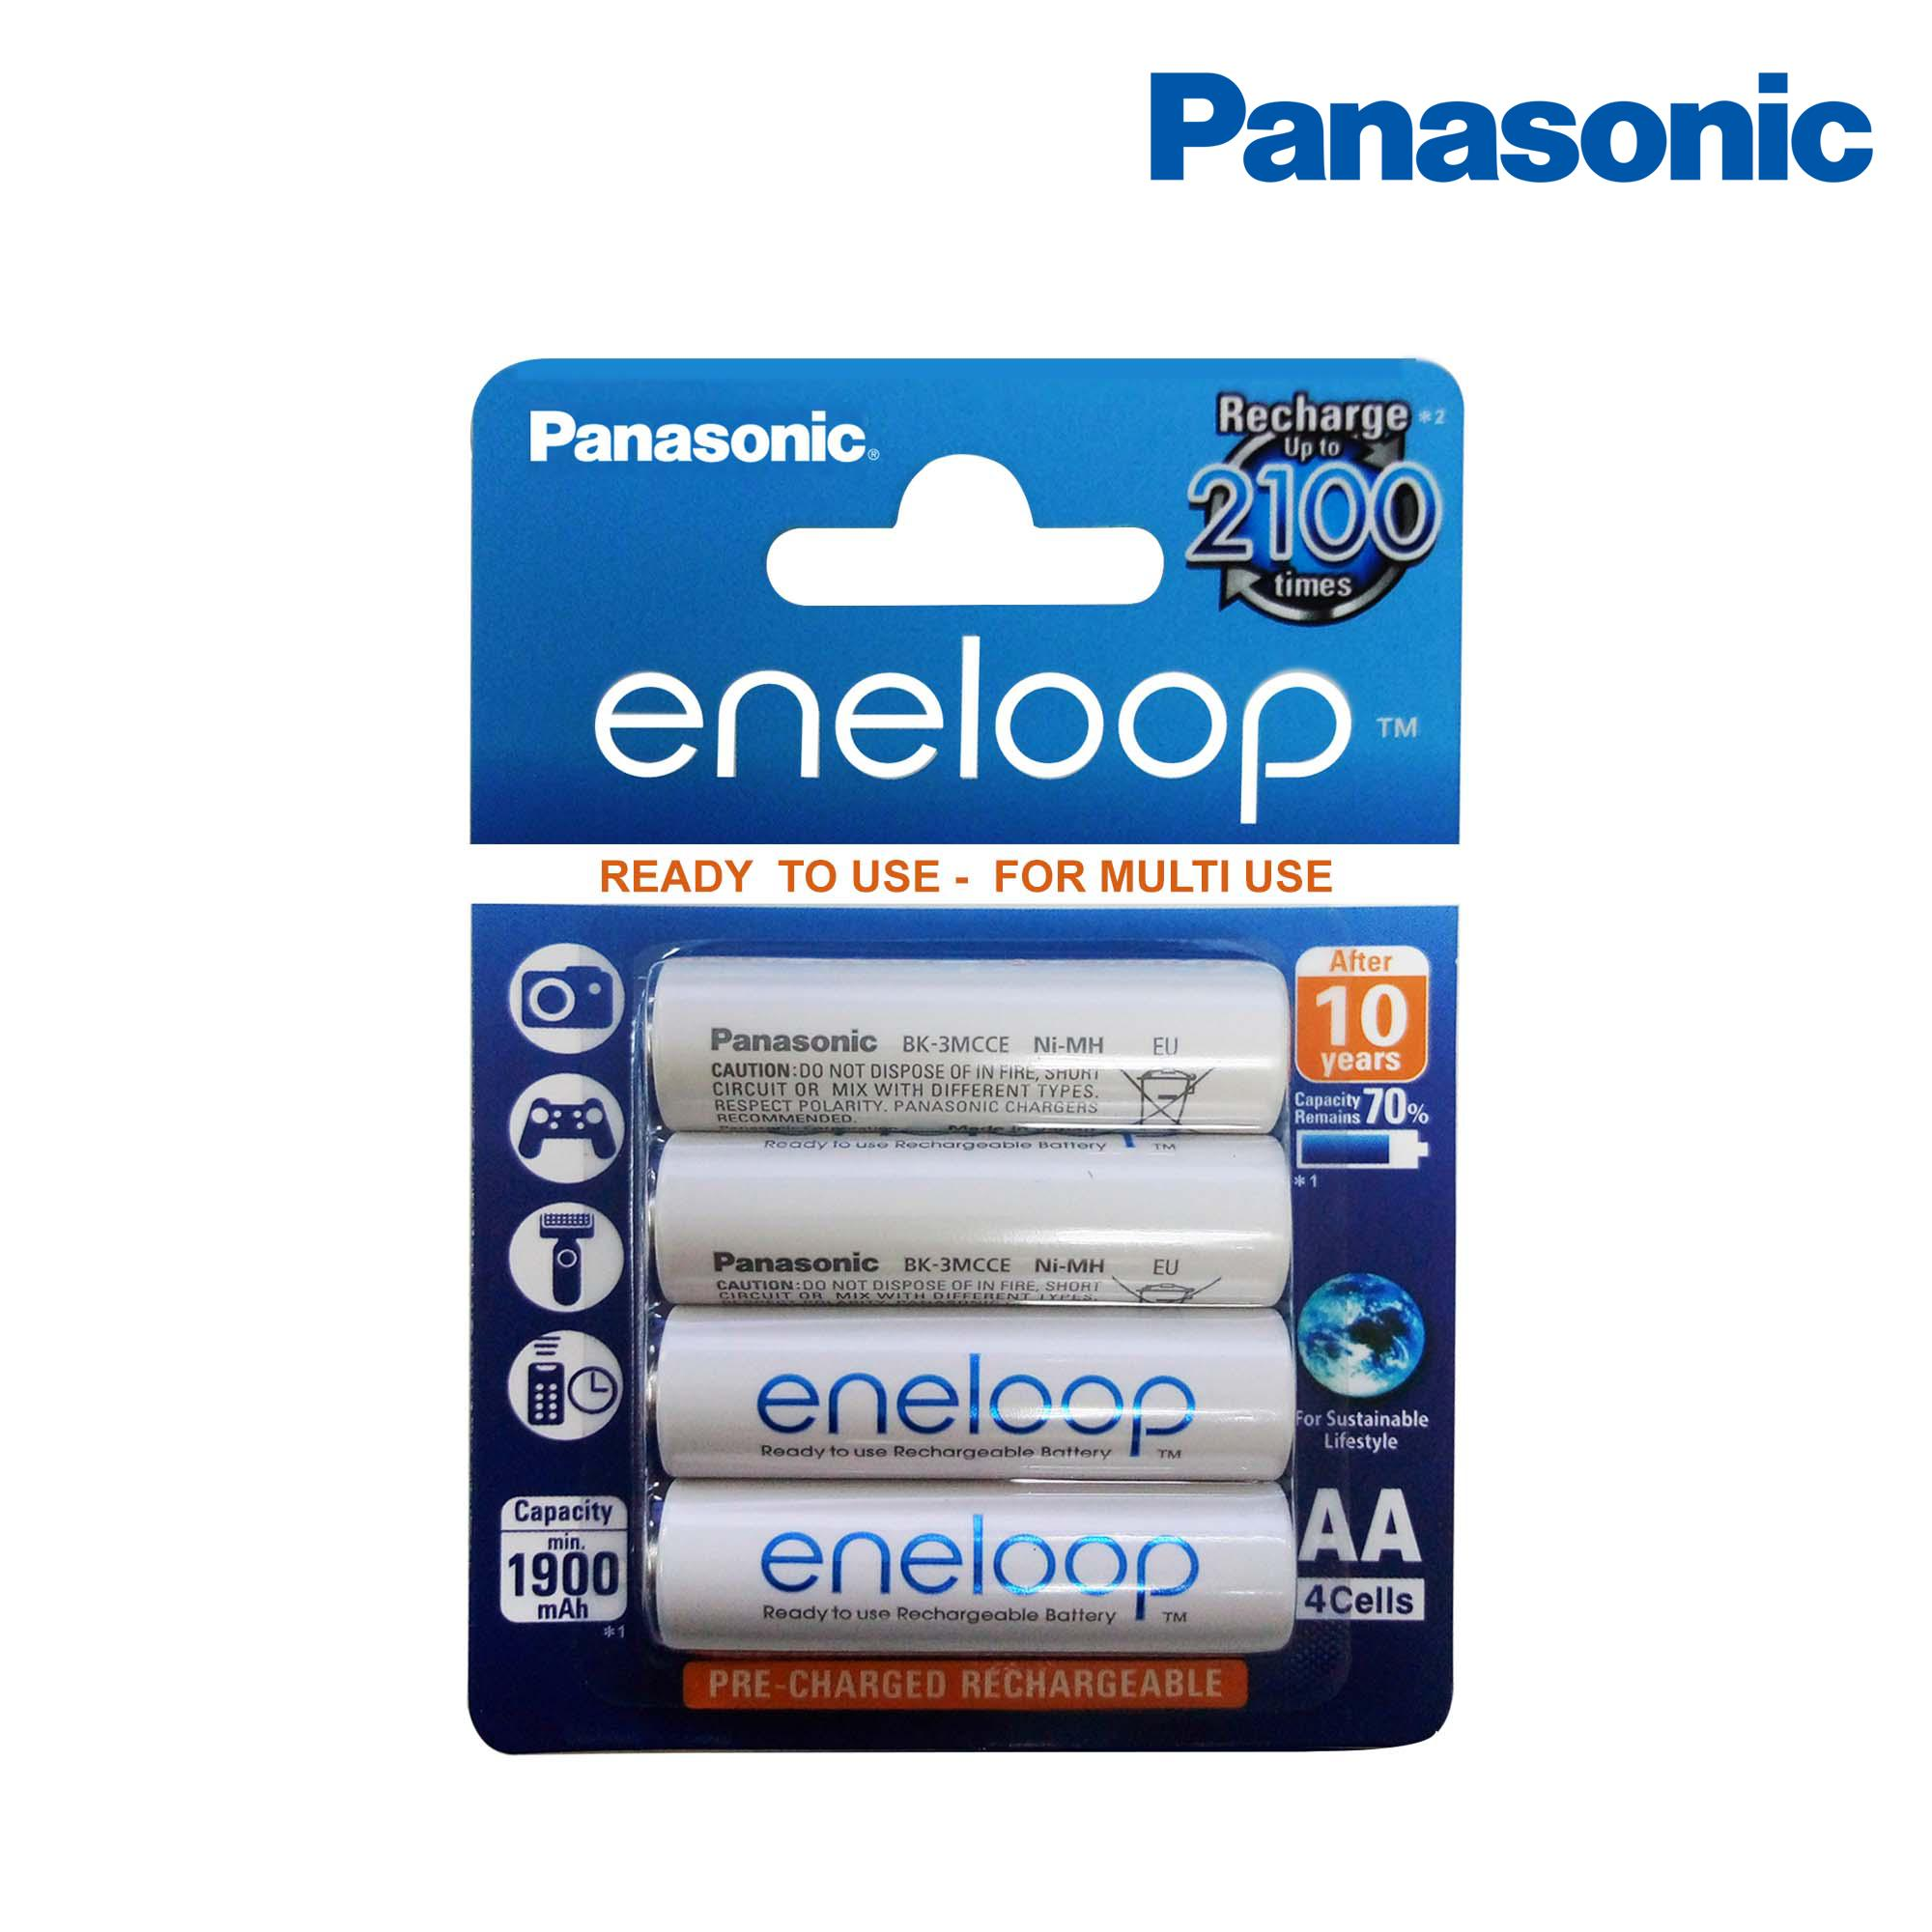 Camera Battery For Sale Digital Prices Brands A2 Aa Fujitsu Alkaline High Power Panasonic Eneloop Pack Of 4 Made